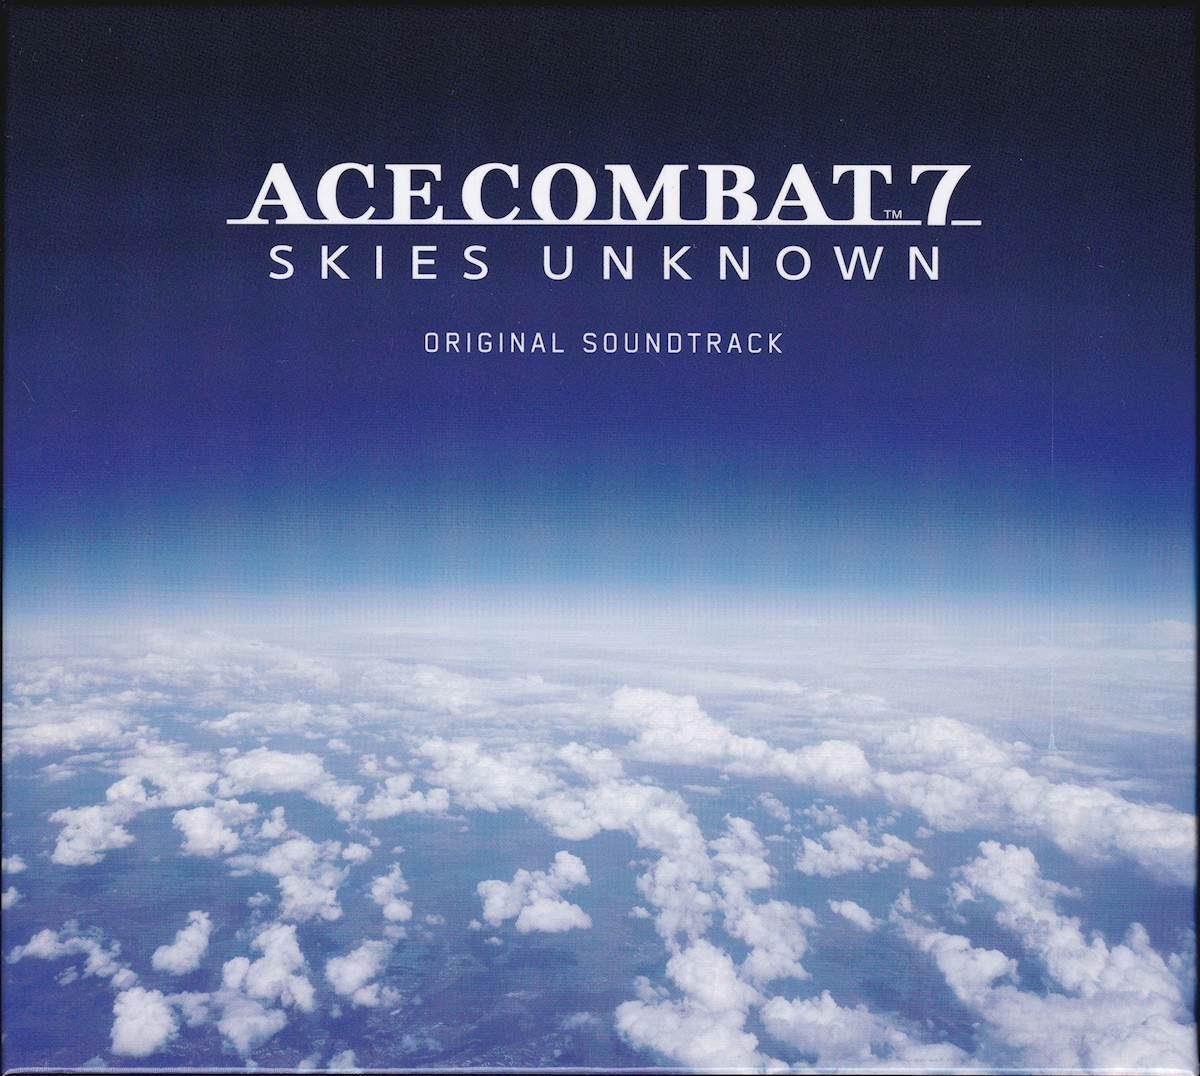 [191230] ACE COMBAT 7: SKIES UNKNOWN Original Soundtrack [SRIN-1162][FLAC+CUE+LOG+Scan]